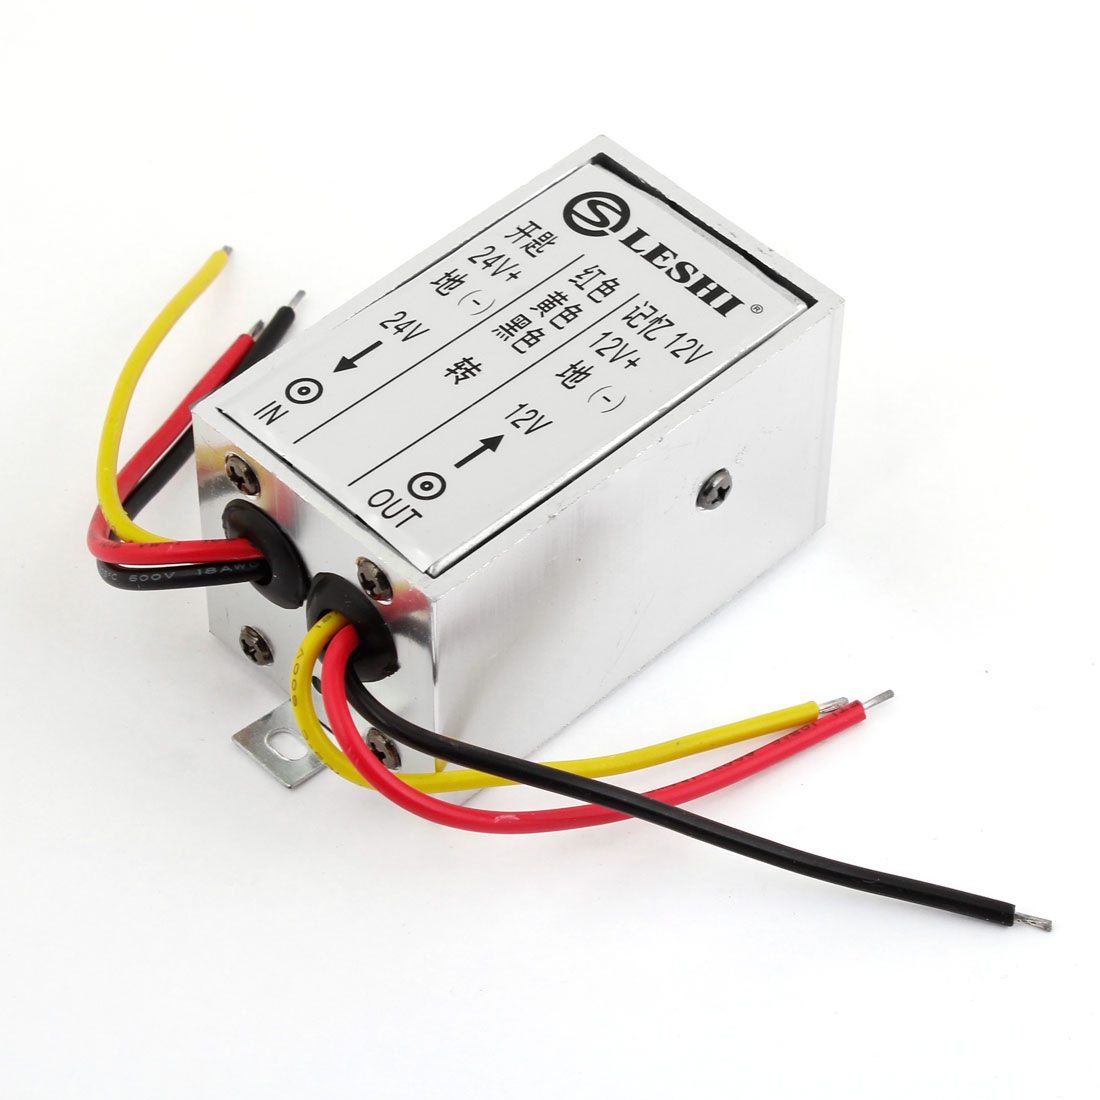 5A 24VDC to 12VDC Power Supply Transformer Converter for Car